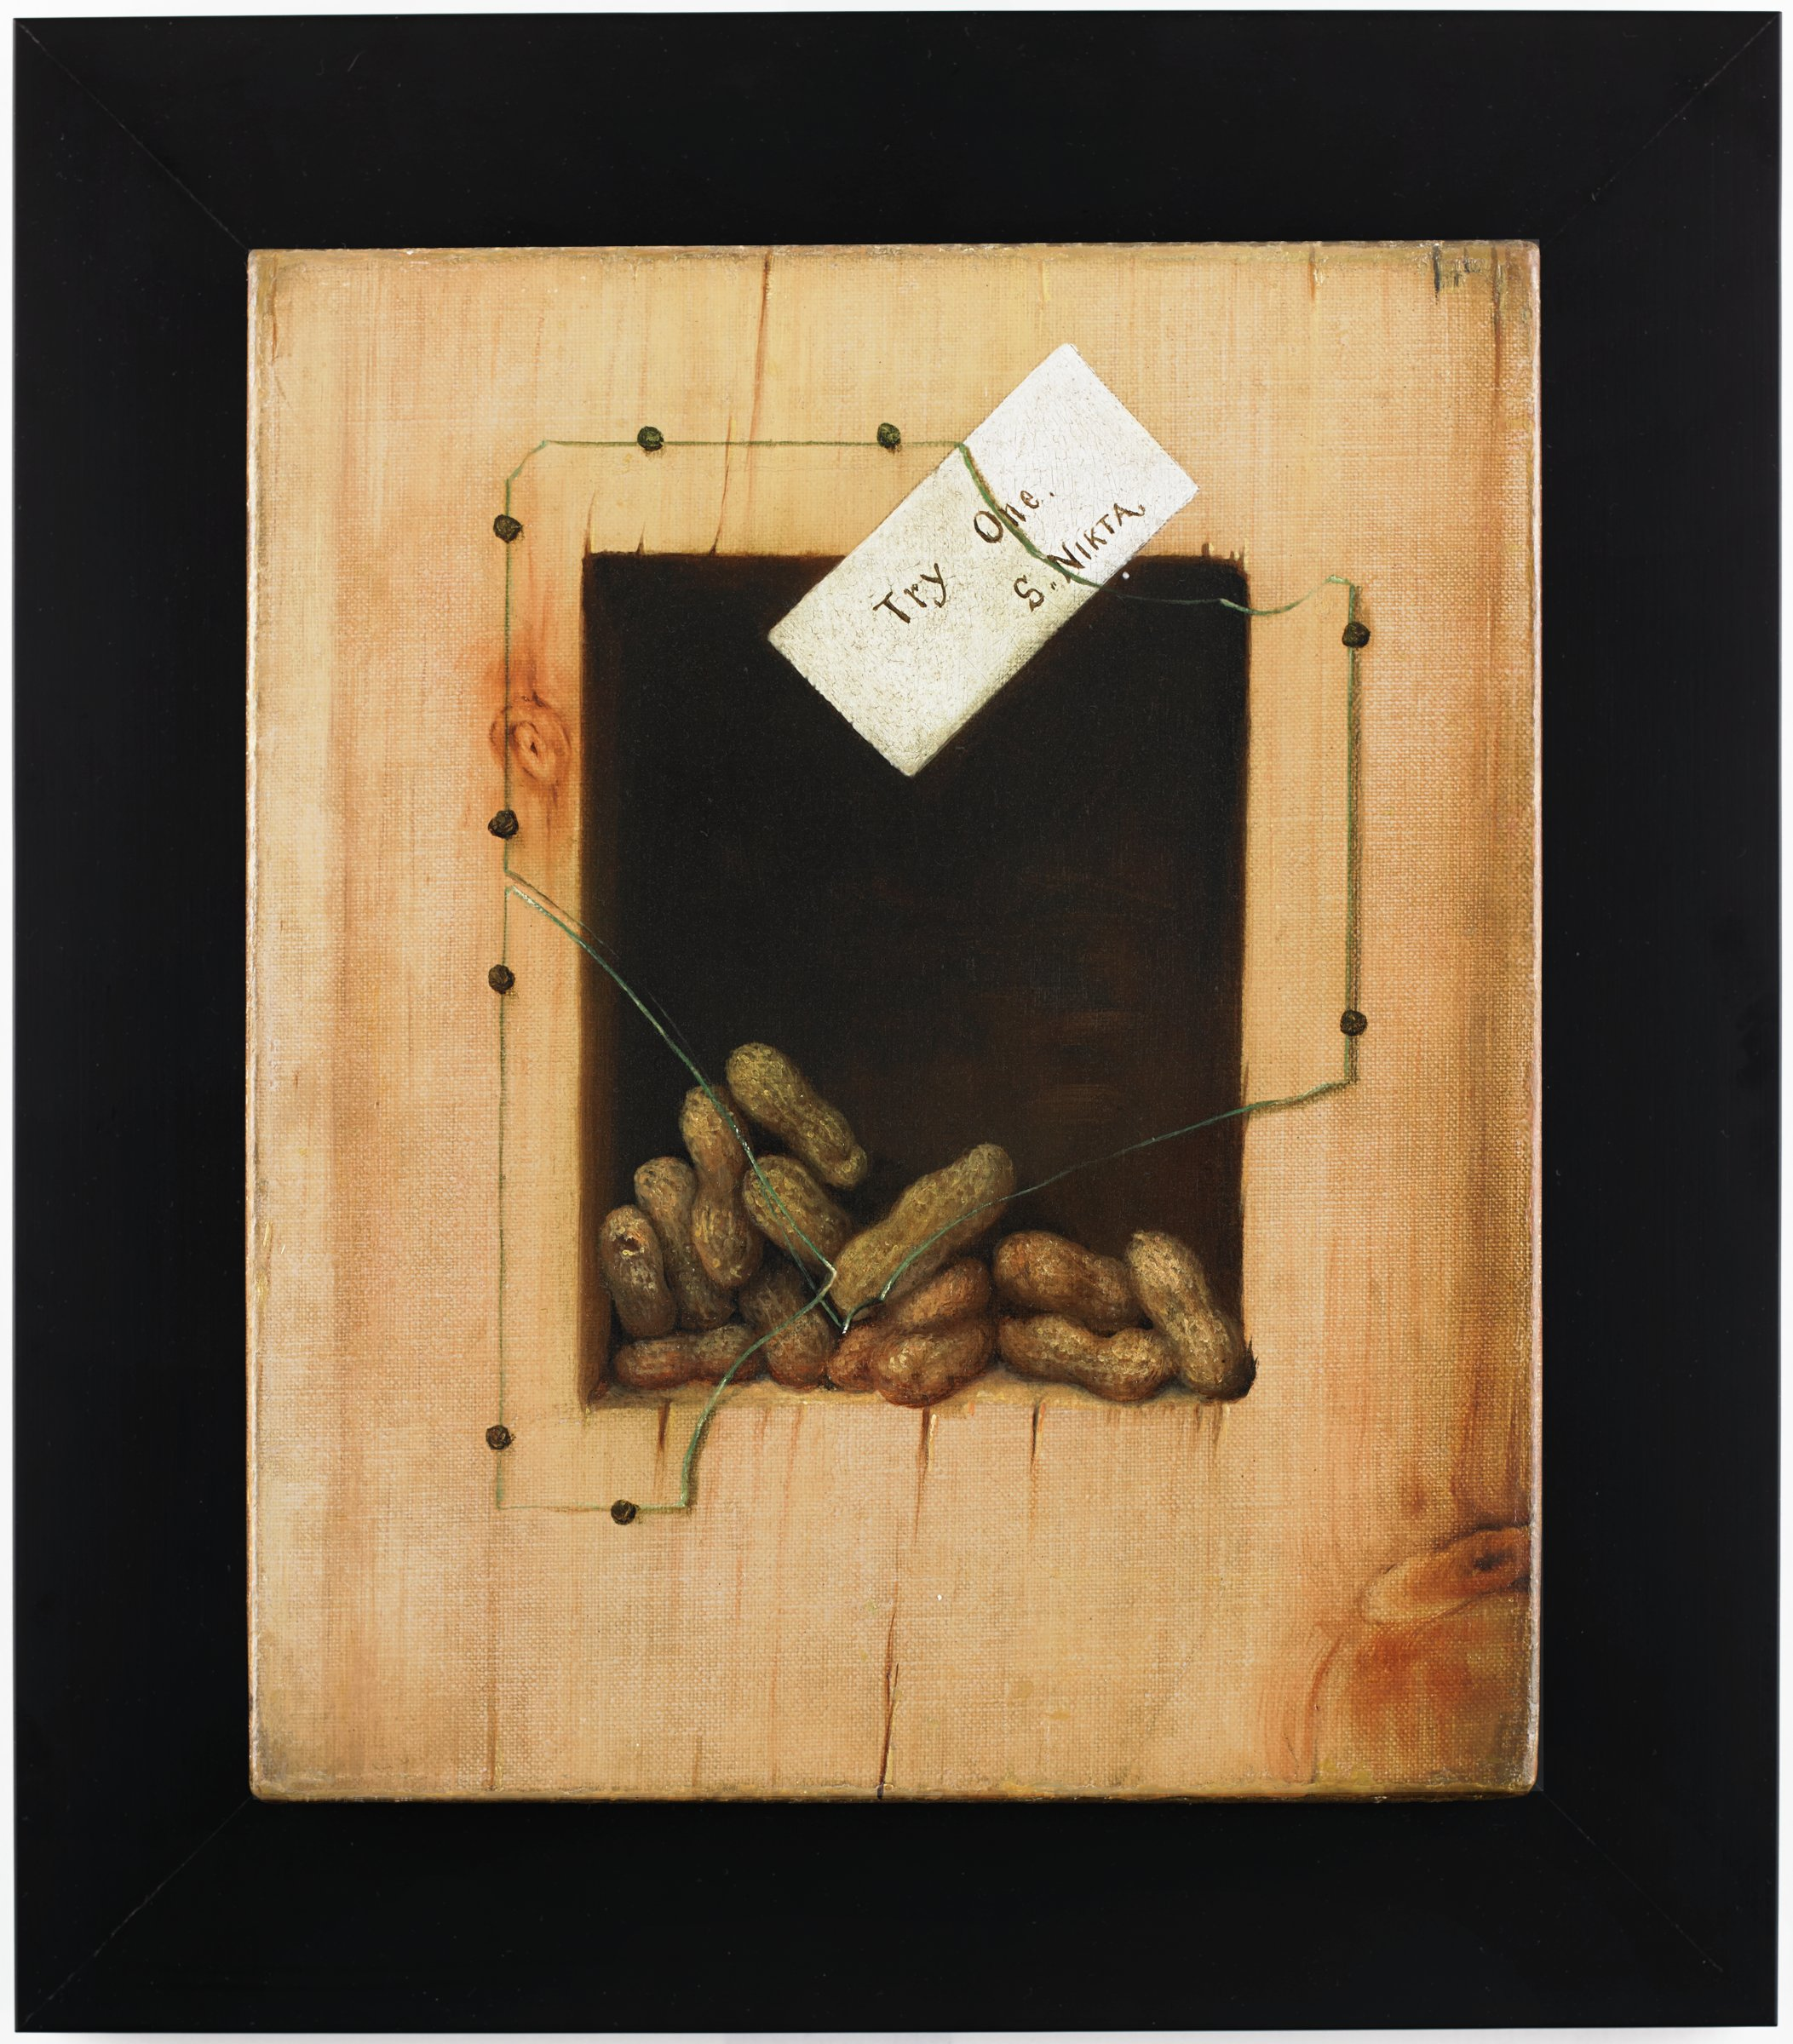 """A trompe-l'œil (French, """"trick the eye"""") still life painting consisting of a stretched canvas, painted around all four sides to resemble a rectangular piece of wood cut from a longer plank. The top and bottom edges have a series of lines painted with a thick impasto to resemble the radial grain of a cut board. At the center of the composition is a dark hollow recess covered with a broken pane of glass held in place by nine tack nails, which contains 14 peanuts, functioning as a makeshift peanut dispenser. Tucked behind the pane of glass at the top of the recess is a white paper card which reads """"Try One. / S. NIKTA."""" """"S. NIKTA"""" is """"Atkins"""" spelled backwards, probably the name of a friend or patron of the artist."""